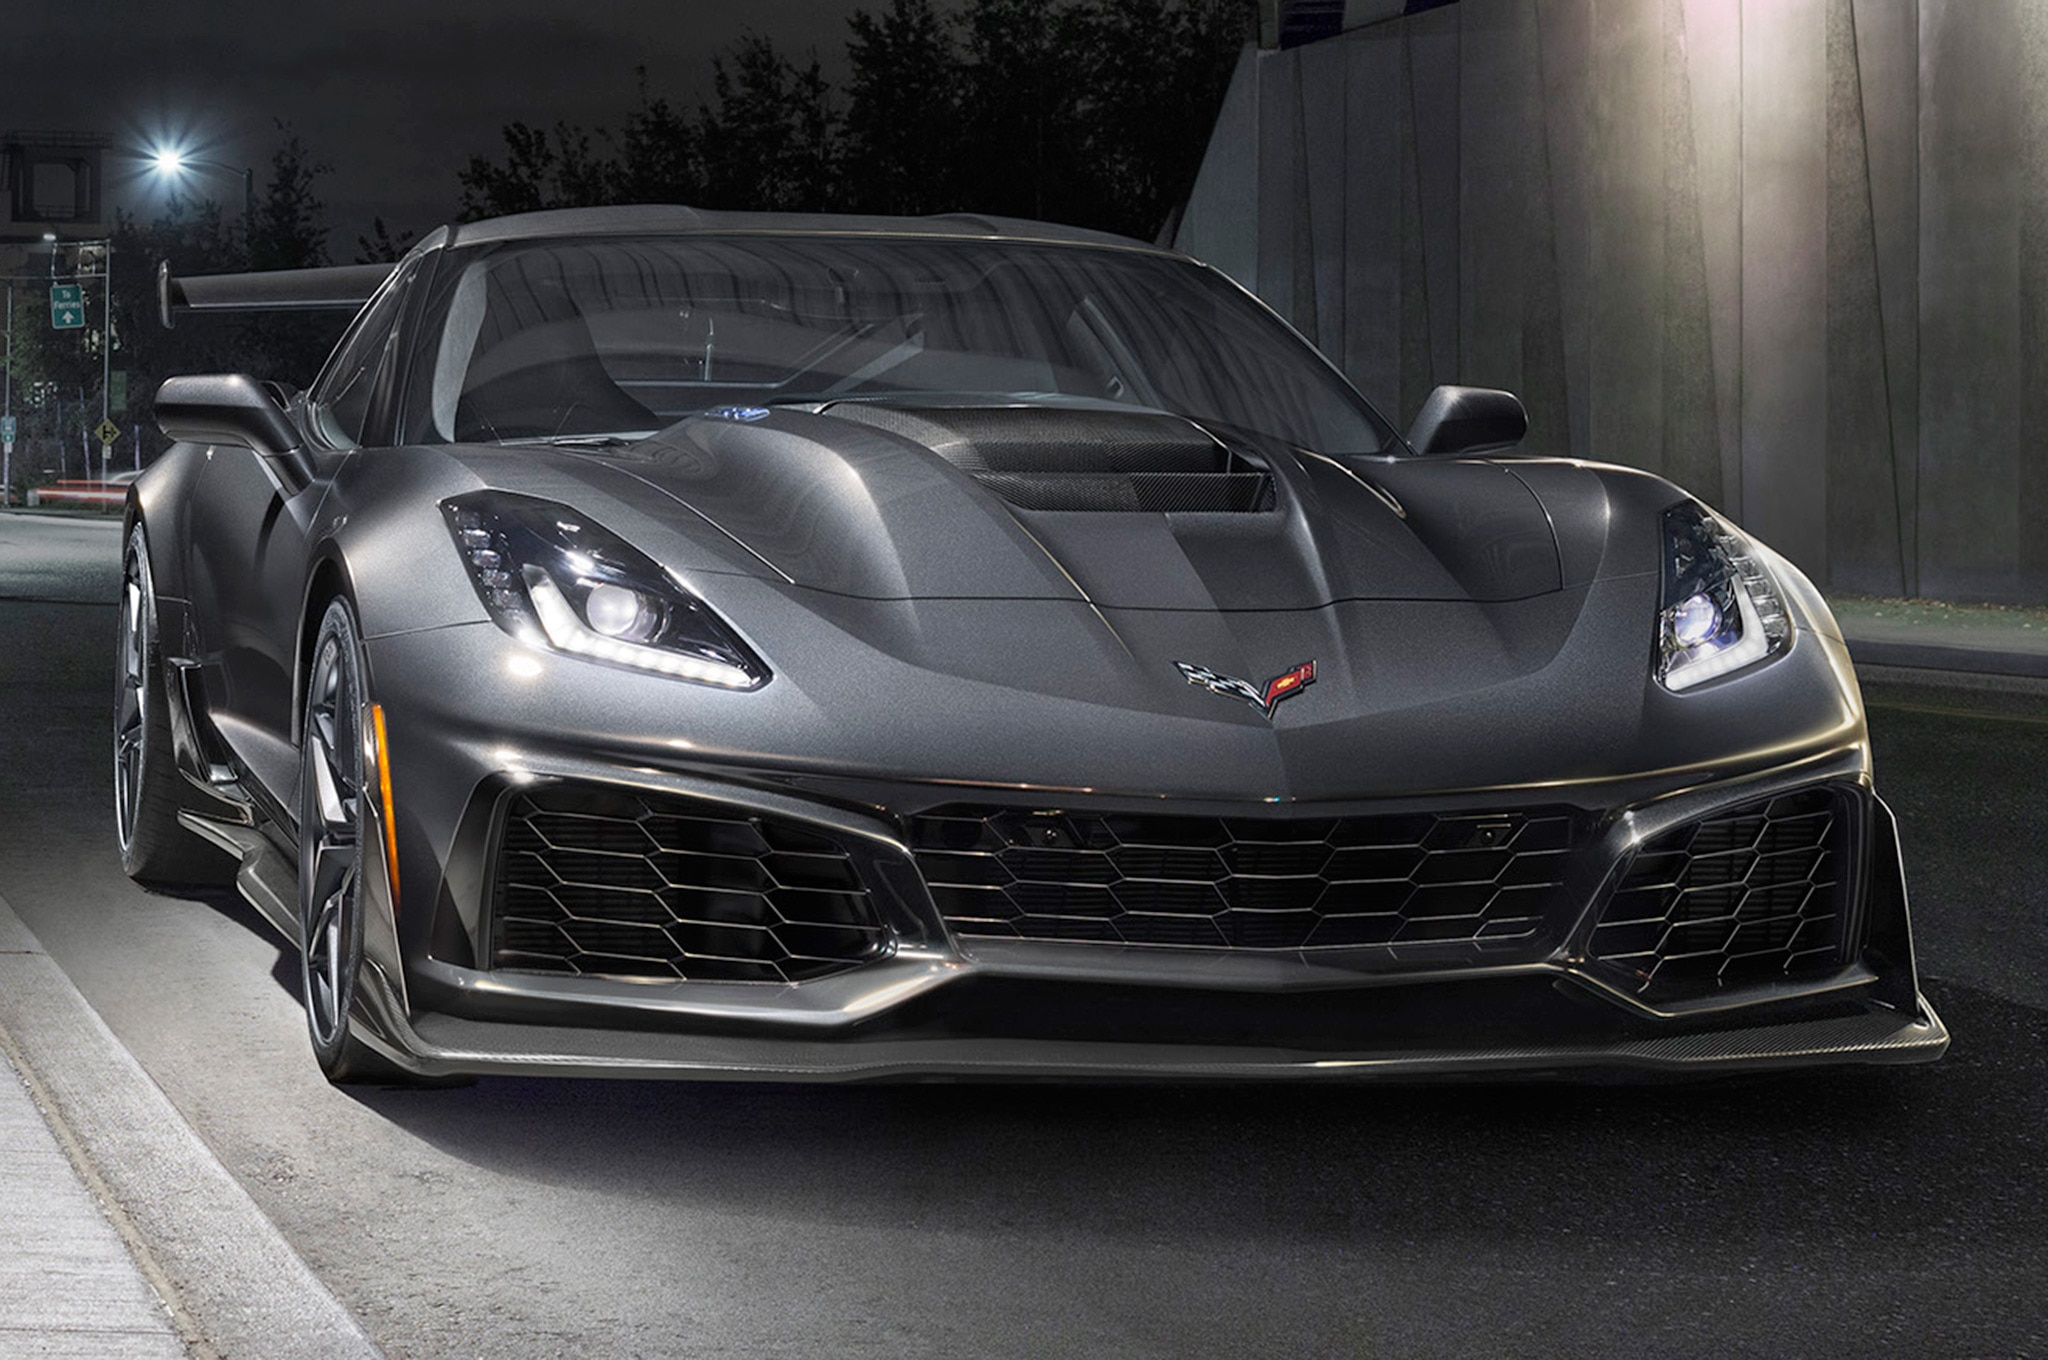 Chevrolet's hardcore Corvette ZR1 unveiled